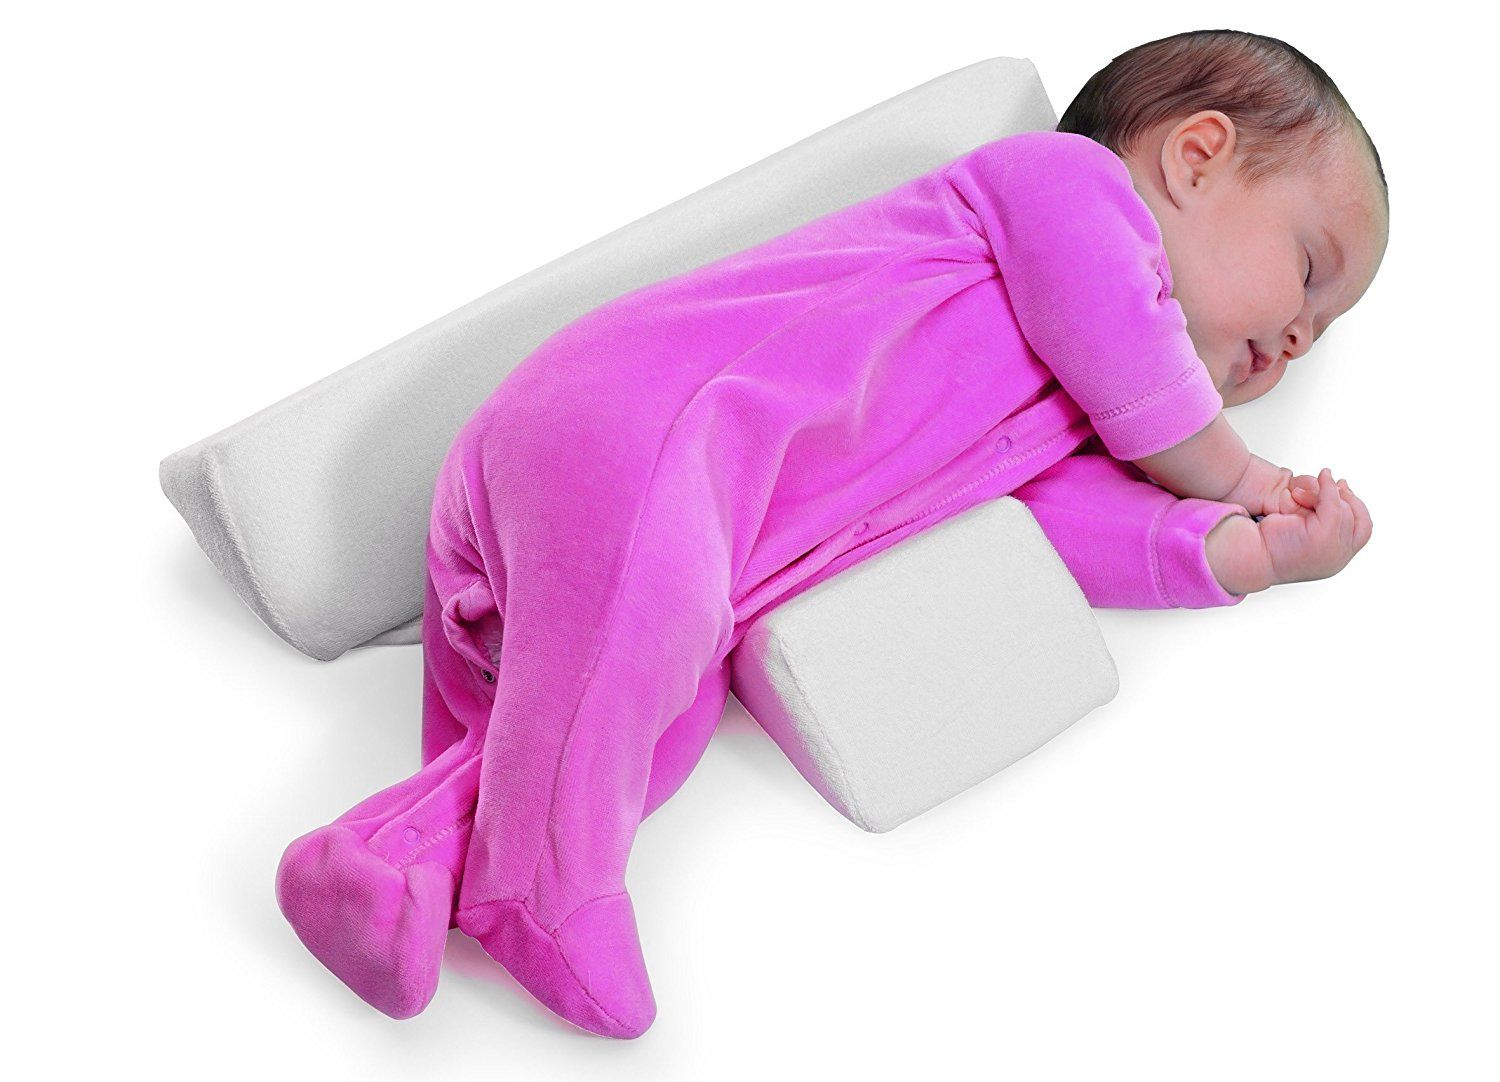 Baby Sleep Pillow Safe Baby bed Washable Wedge Adjustable Anti-roll For Newborn